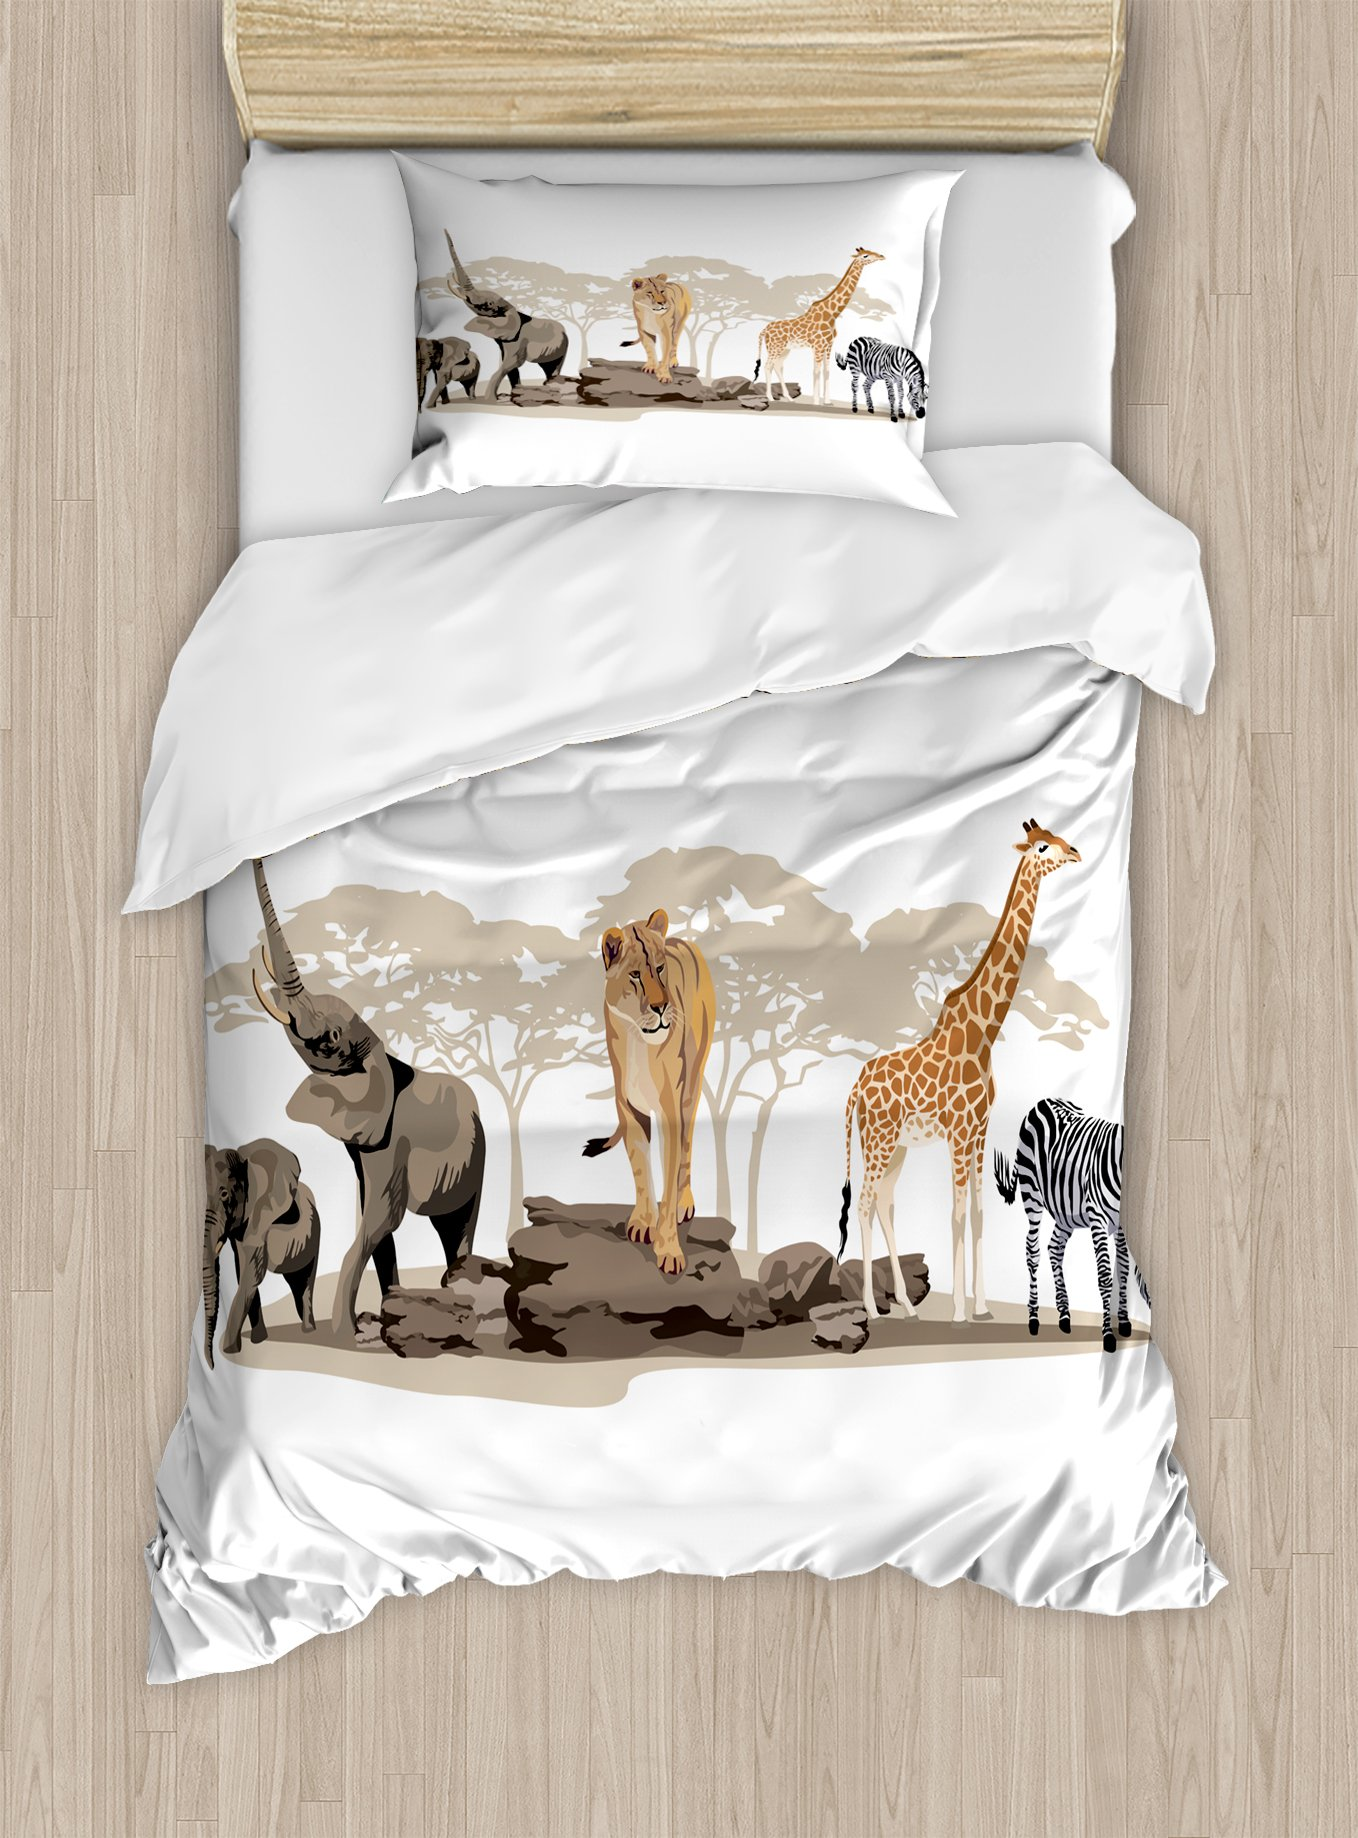 Ambesonne Safari Duvet Cover Set Twin Size, Illustration of Wild Savannahs African Animals Exotic Giraffe Lion Elephant Zebra, Decorative 2 Piece Bedding Set with 1 Pillow Sham, Multicolor